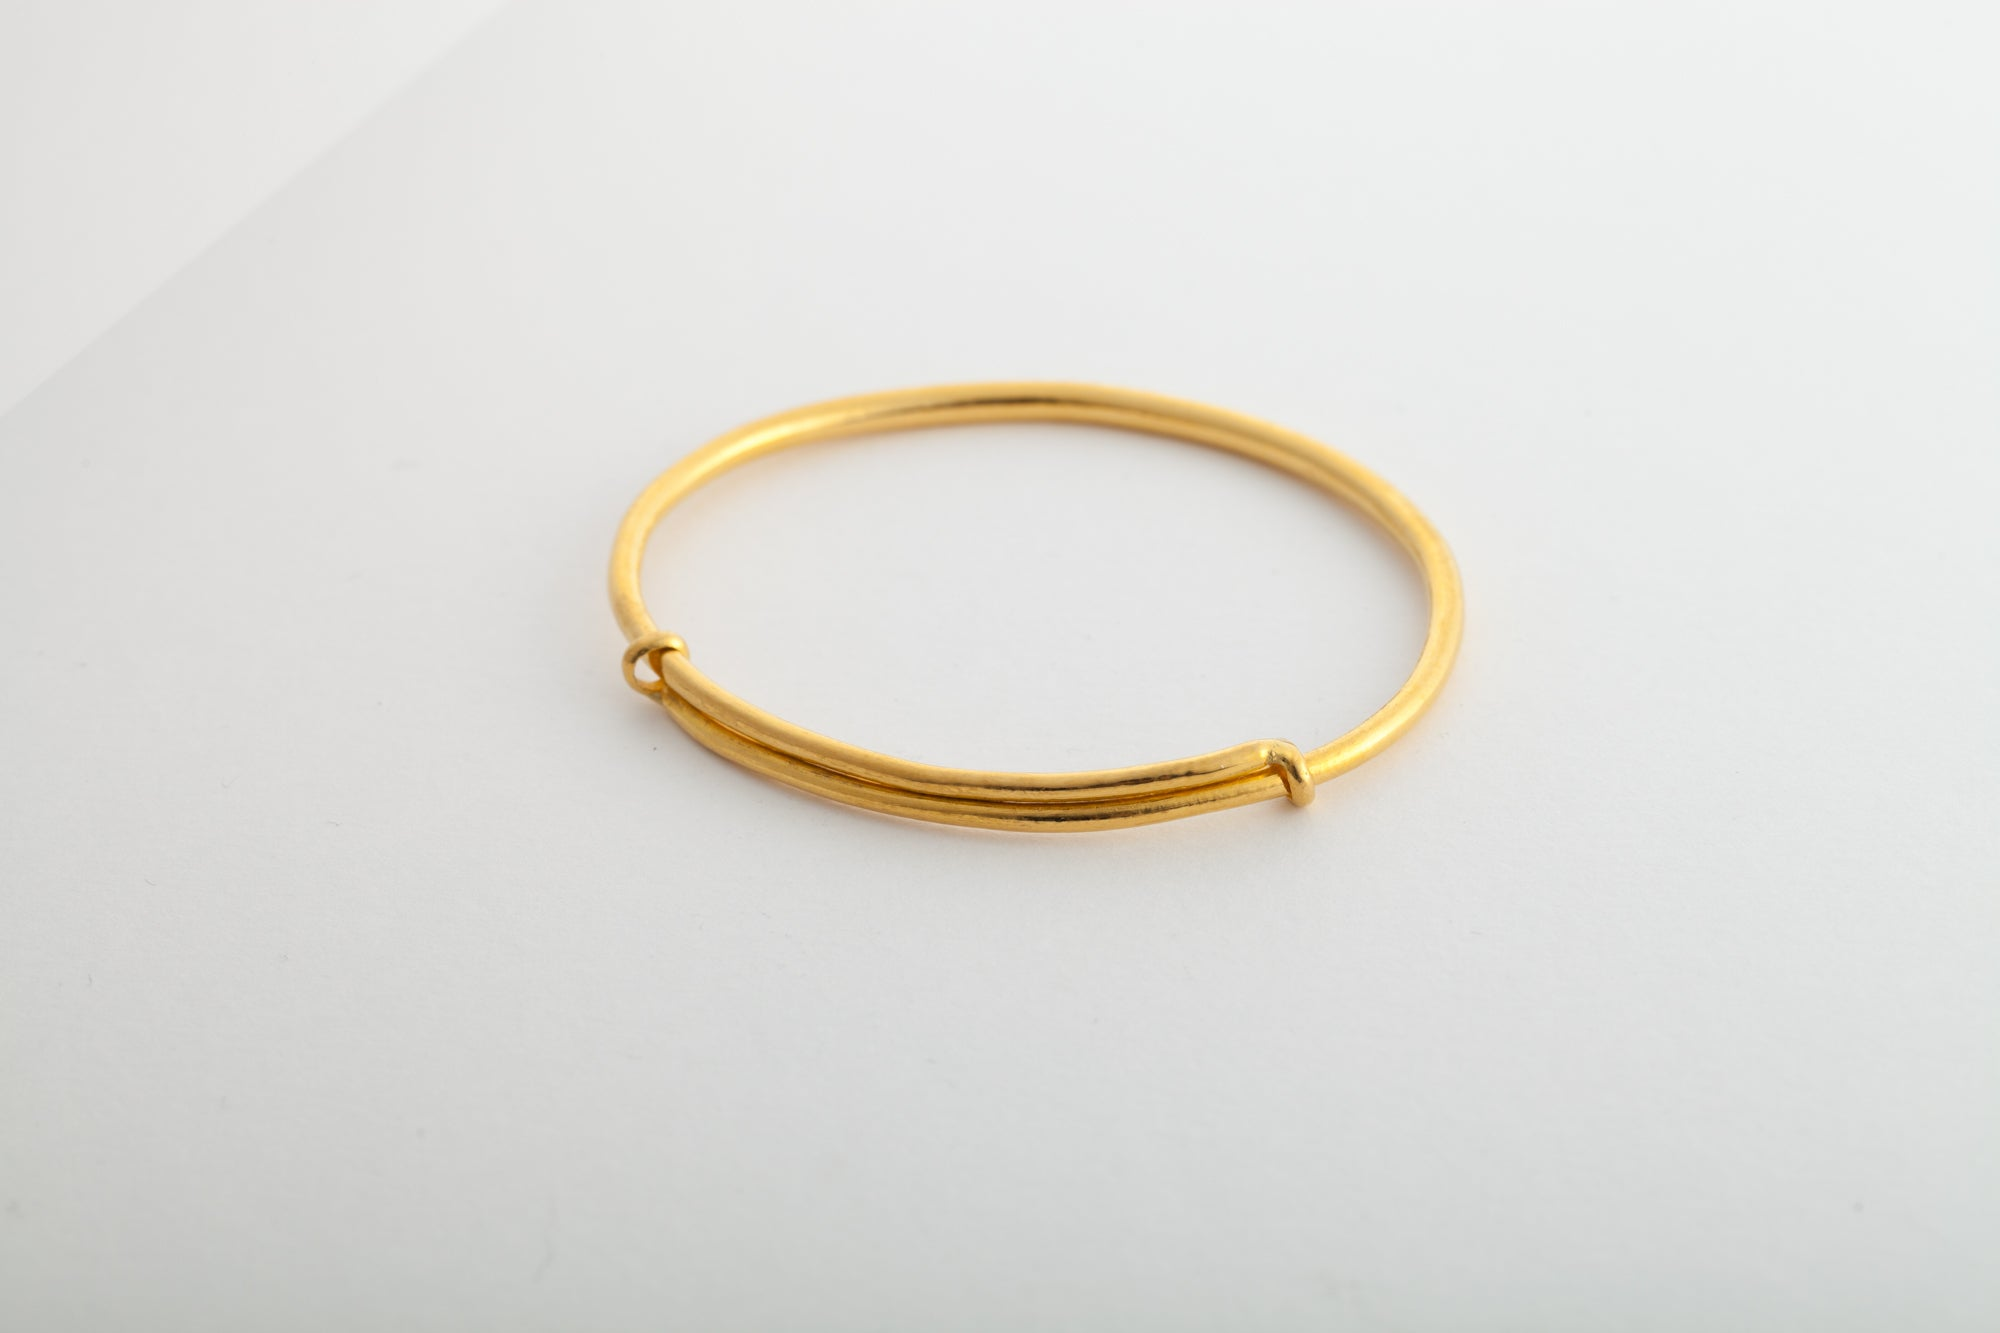 products with squares included revolving bracelet gold